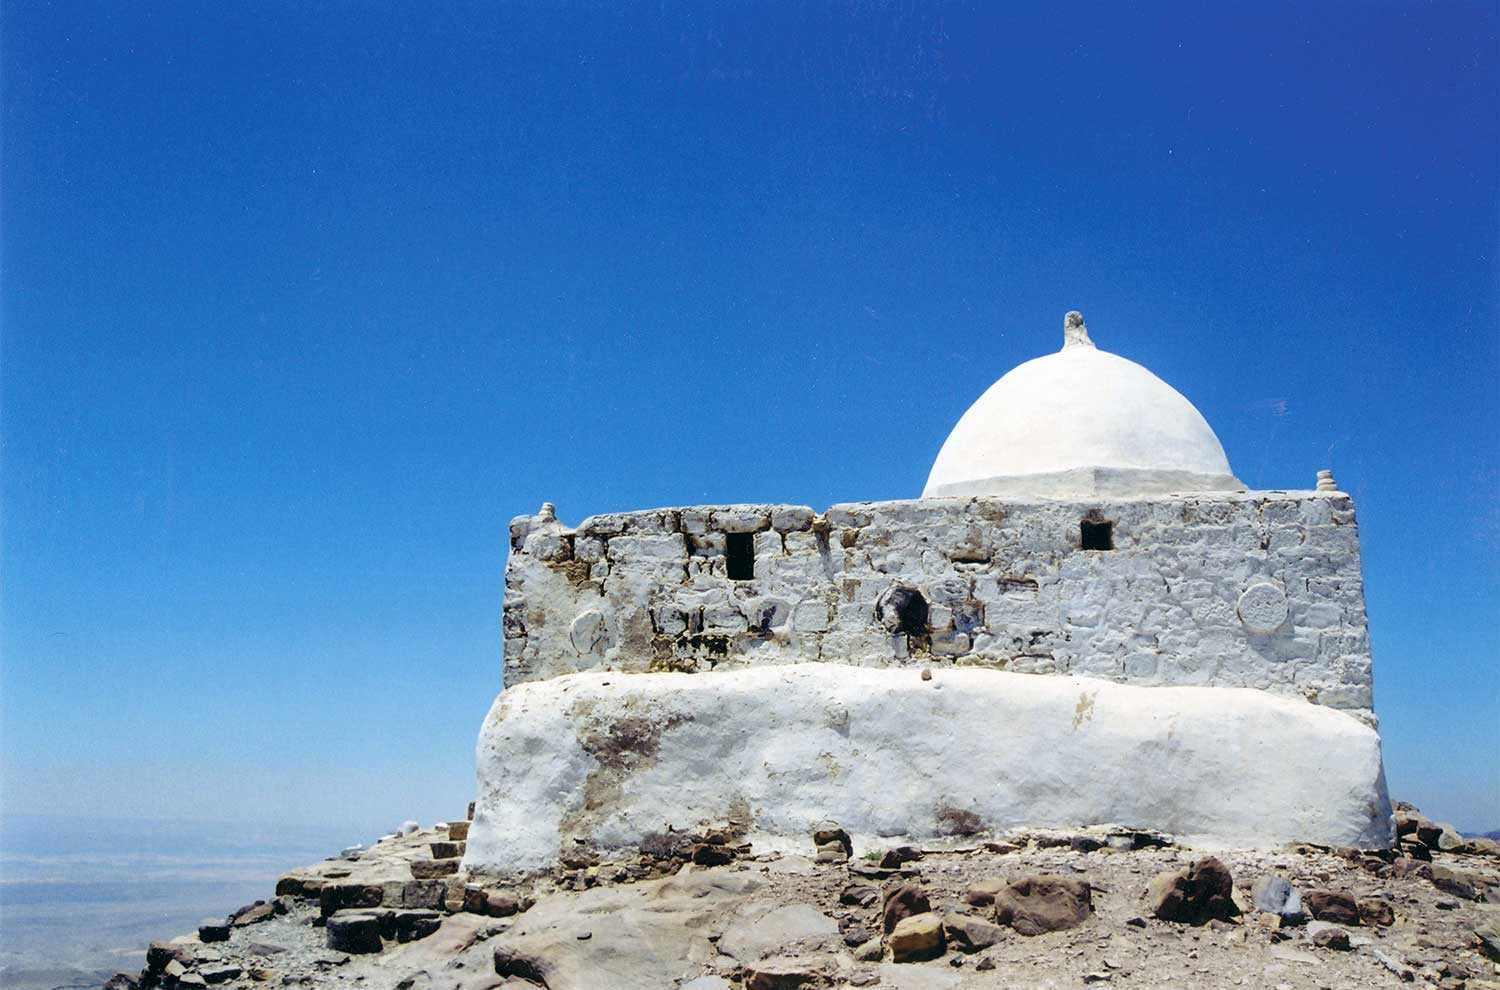 The pilgrimage shrine on the summit of Jebel Haroun in Jordan is celebrated as the tomb of the Aaron, brother of Moses. (Photo courtesy of Sean Fraser)